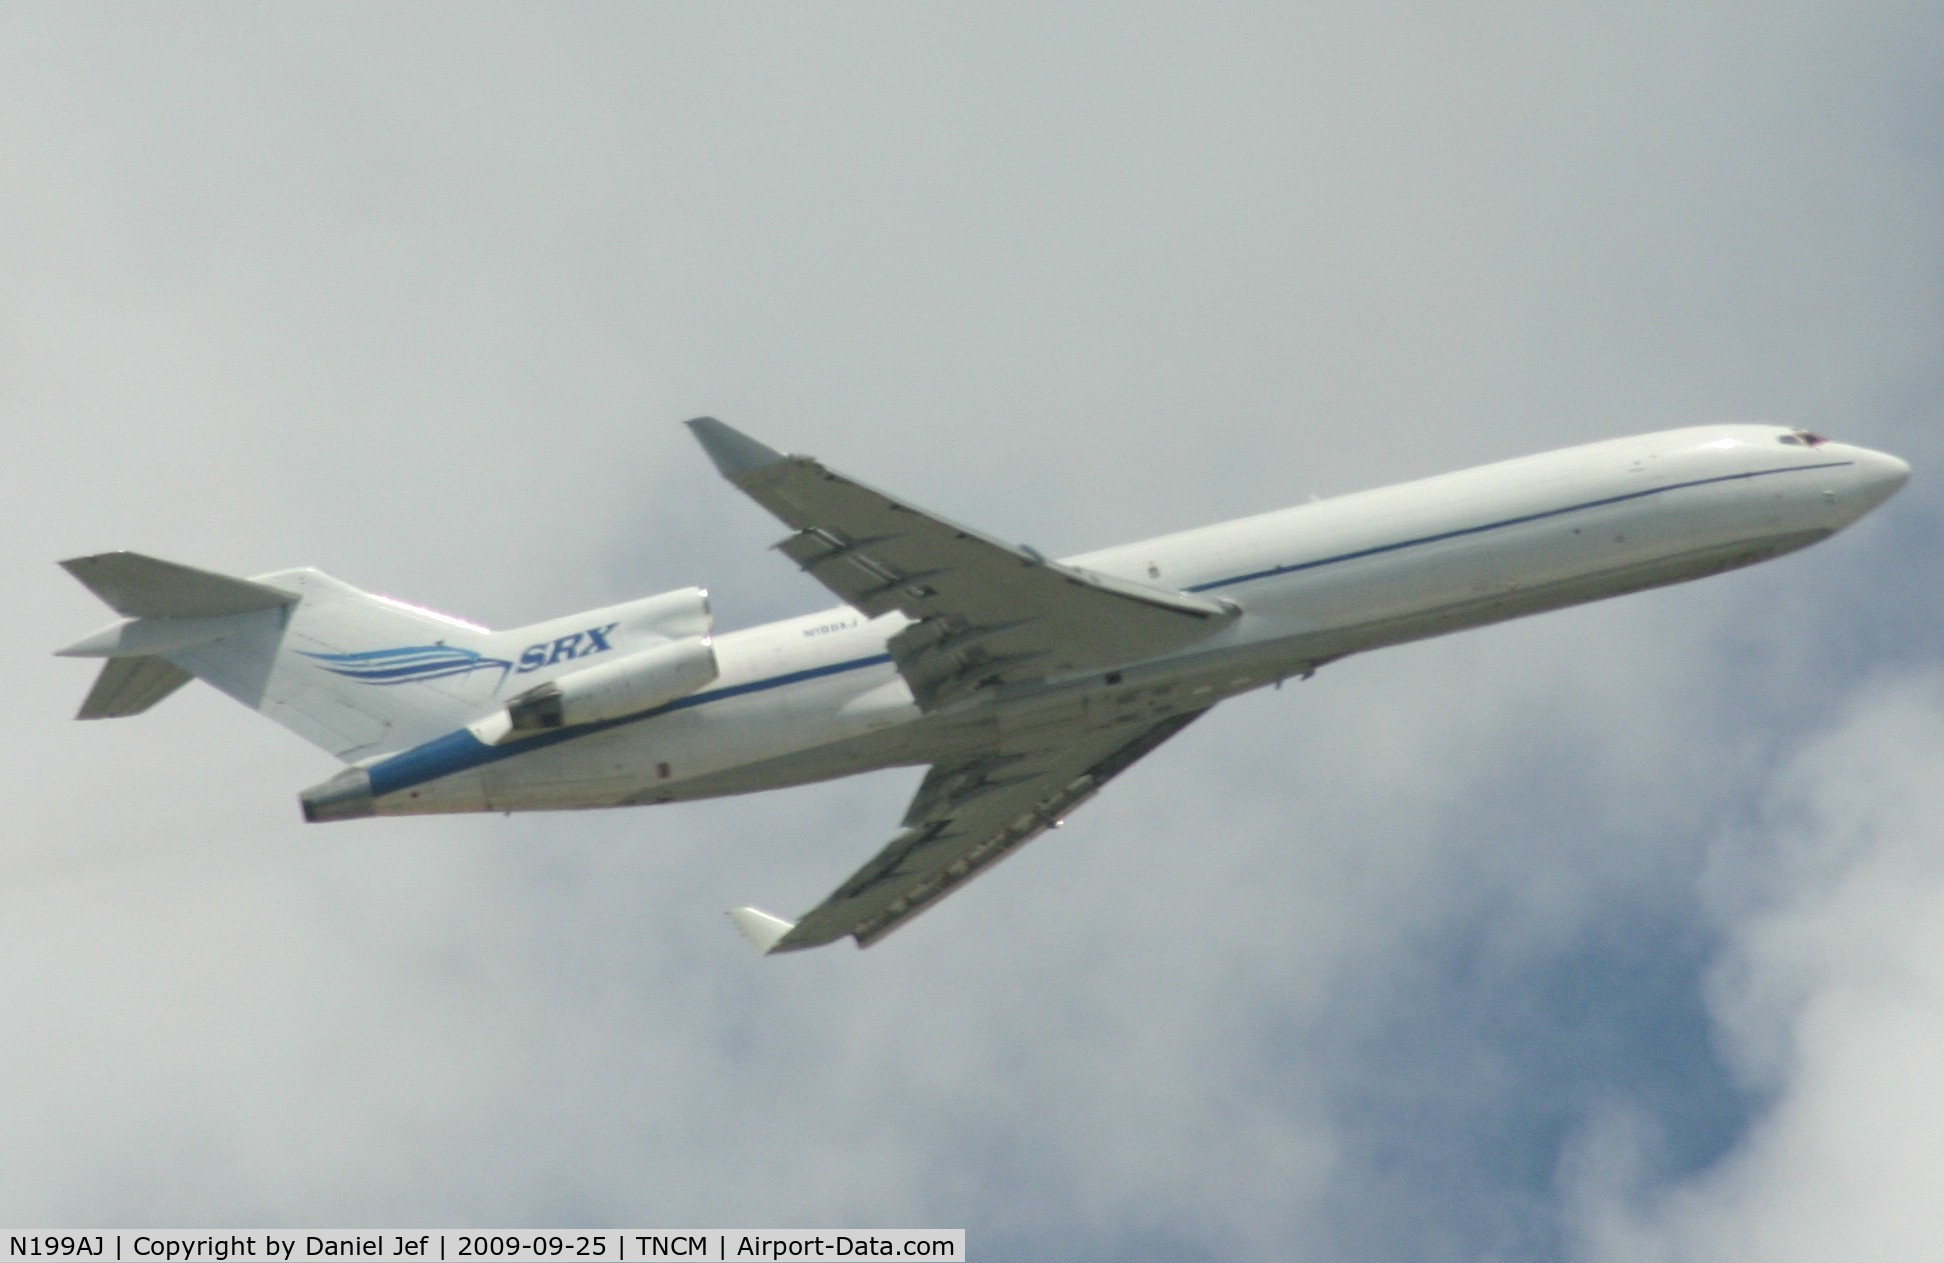 N199AJ, 1979 Boeing 727-2F9 C/N 21426, Just drop of there cargo and now on there way to TAPA